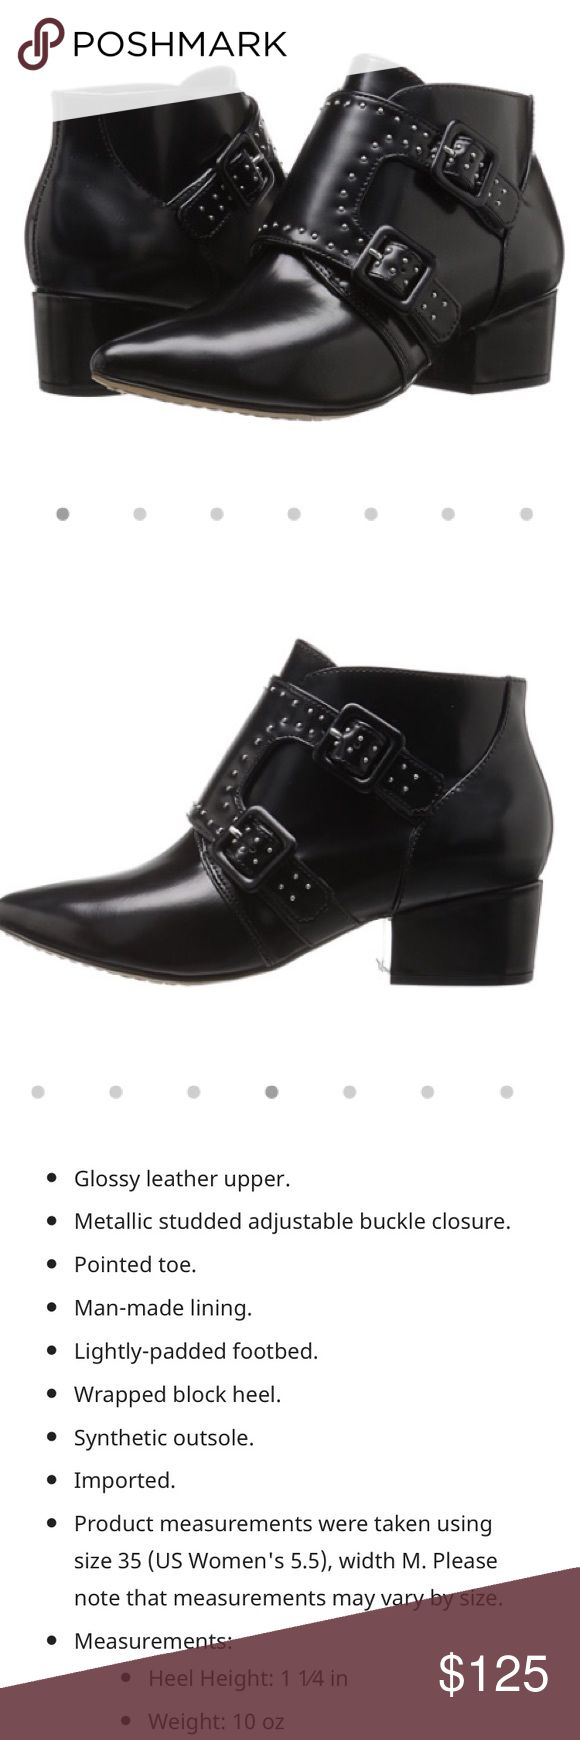 French connection bootie! Brand new with tags! French Connection bootie with studded detail! These are super stylish, I wish they would of fit me! Never worn! French Connection Shoes Ankle Boots & Booties